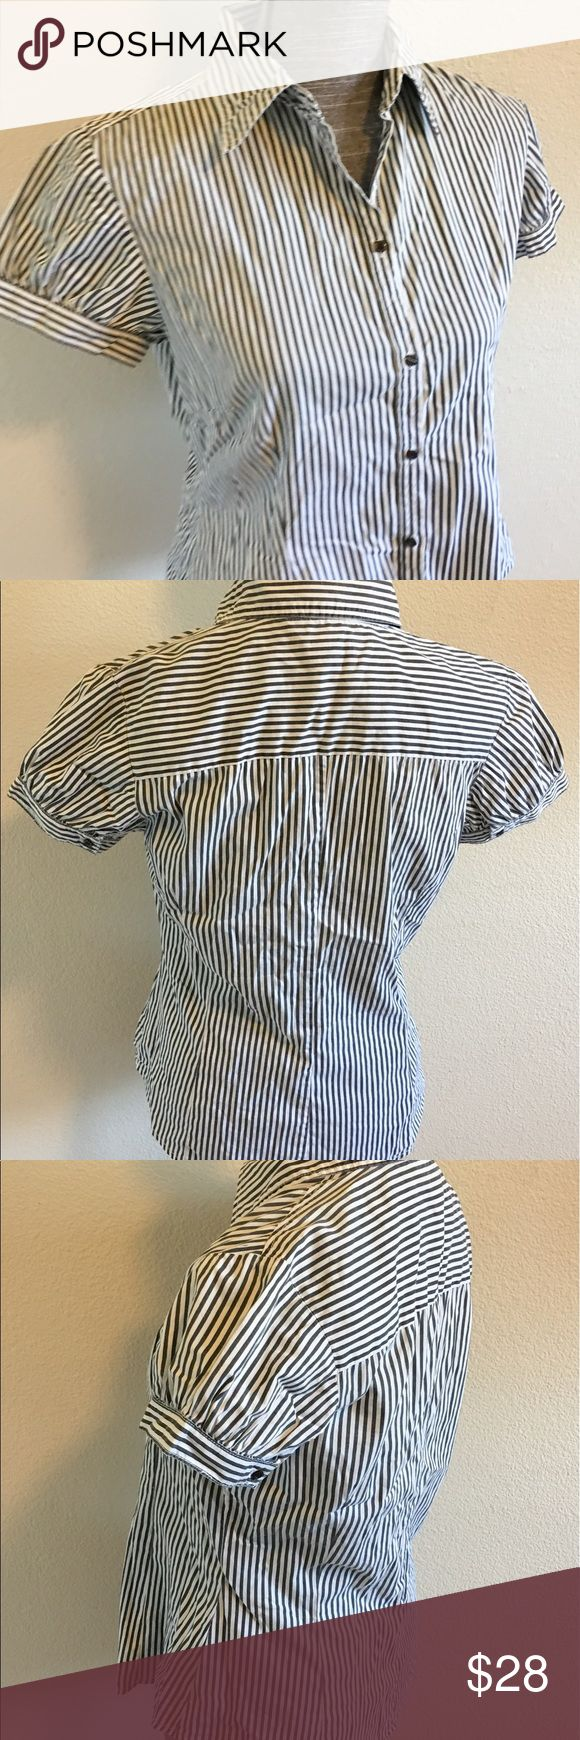 """Tom Taylor Stripe Blouse Top Tom Tailor Casual Stripe Blouse Top   Size:38 / Medium  Armpits """" 18"""" Length 24""""  Machine wash: wash cold/ tumble dry low Condition: no rips no stains   ❌no holds ❌no trades (A13) Tom Tailor Tops Button Down Shirts"""